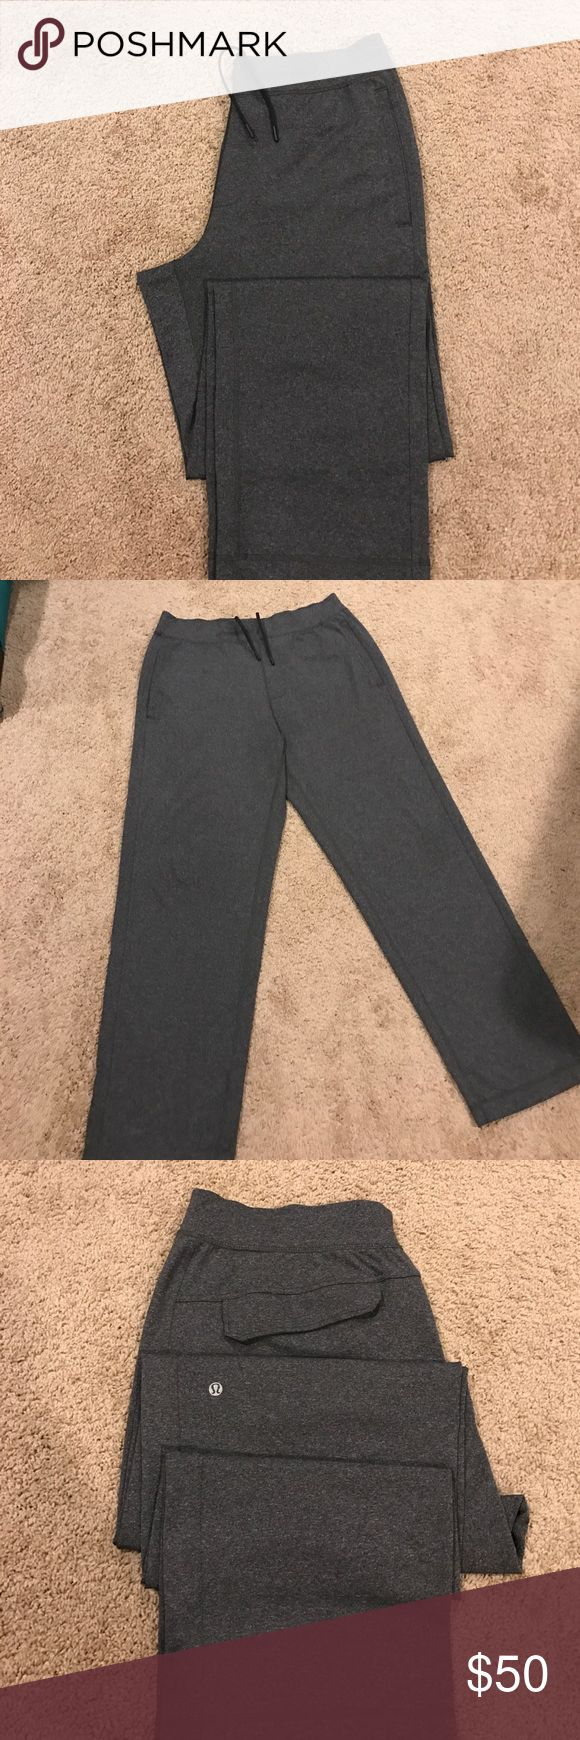 Lululemon Men's yoga Pants Lululemon Men's grey heathered yoga pants in lightweight stretch fabric.  Drawstring waist, front side pockets and back flap pockets on rear.  Near perfect.. worn a couple of times.  Smoke free home. lululemon athletica Pants Sweatpants & Joggers